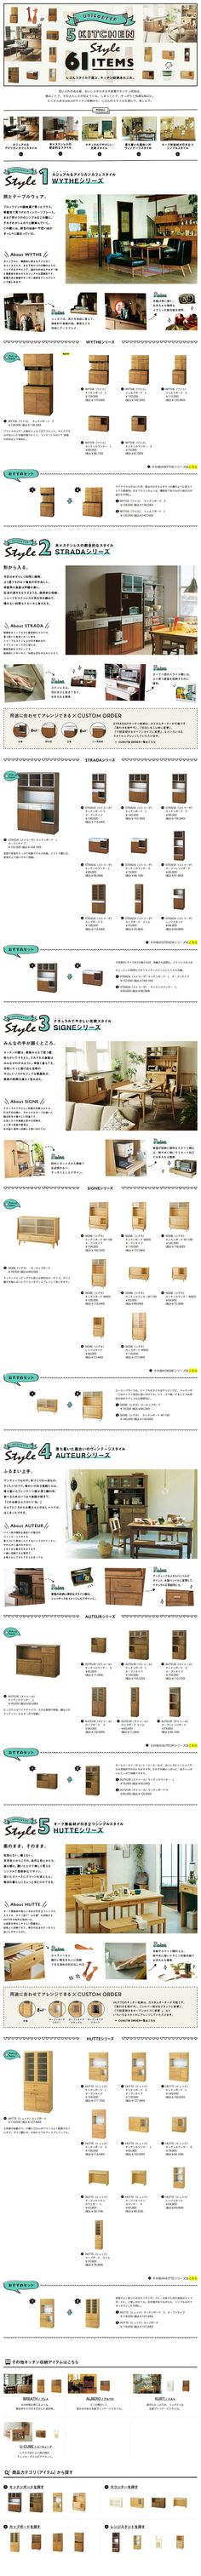 unicoおすすめ 5KITCHEN style 61ITEMS